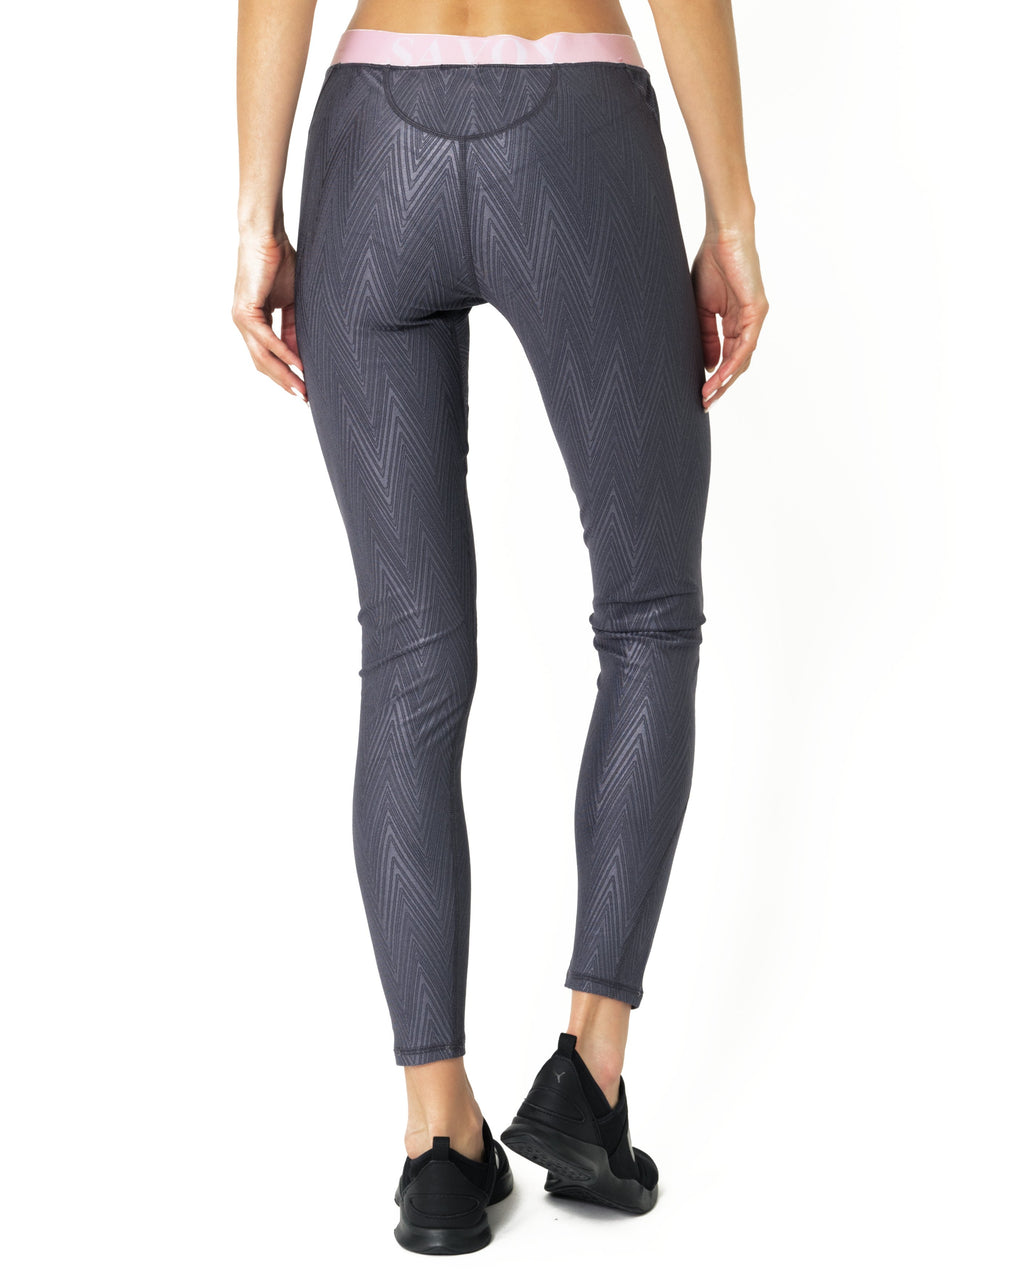 River Leggings - KATANA FASHION BOUTIQUE